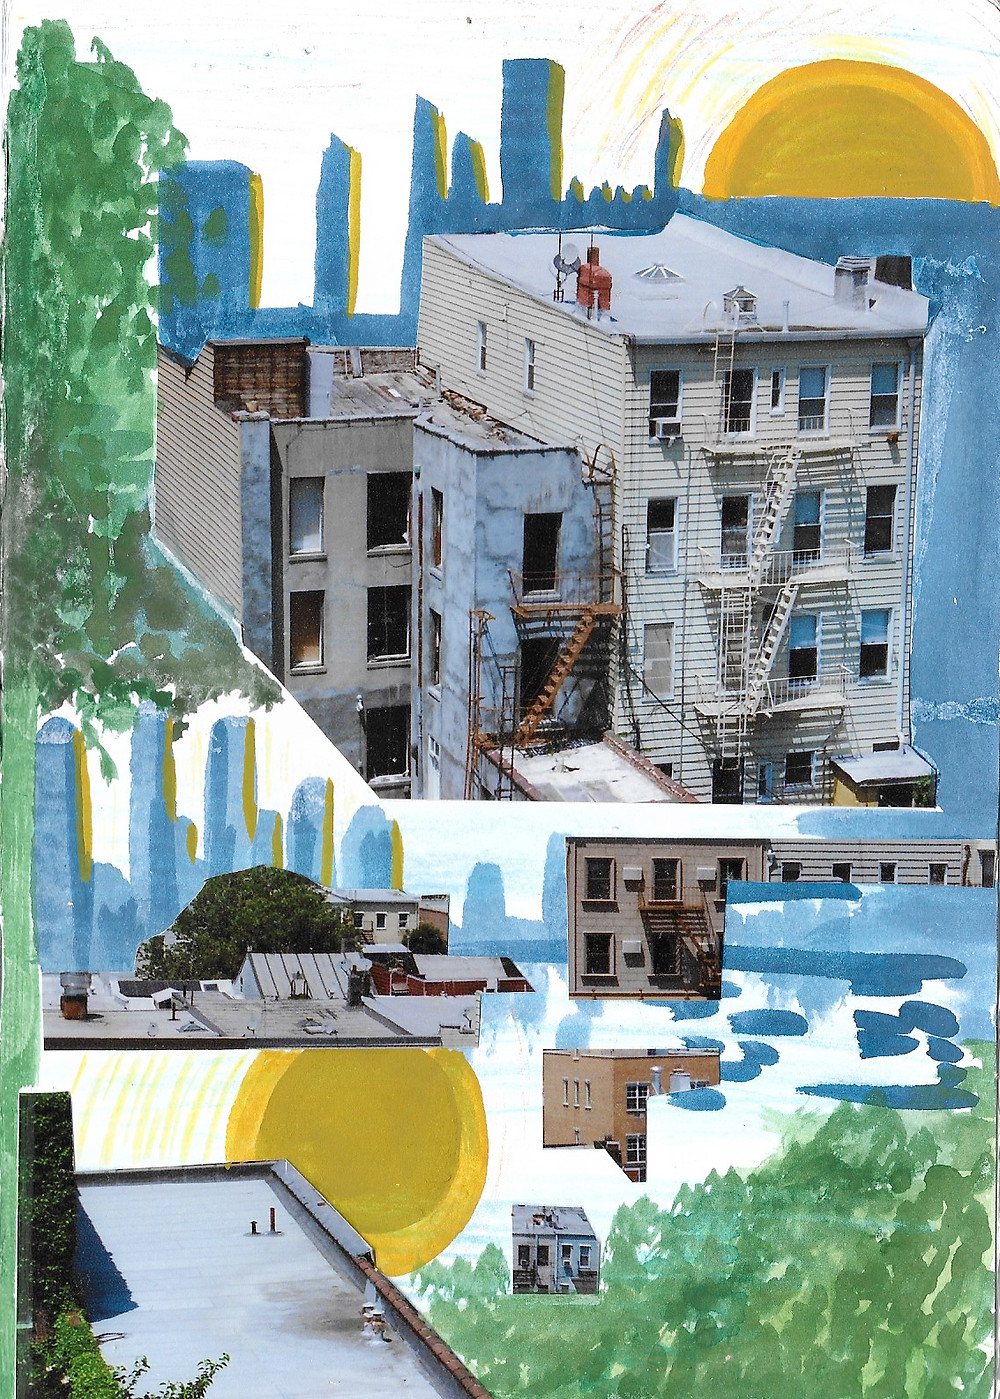 The image is a collage, showing a decaying building rising out of a wide blue stretch of colour. An ochre yellow sun in the top right is mirrored in the bottom left, creating the sense of water, fluidity, reflection. Soft, blotted green shapes stand in for trees.